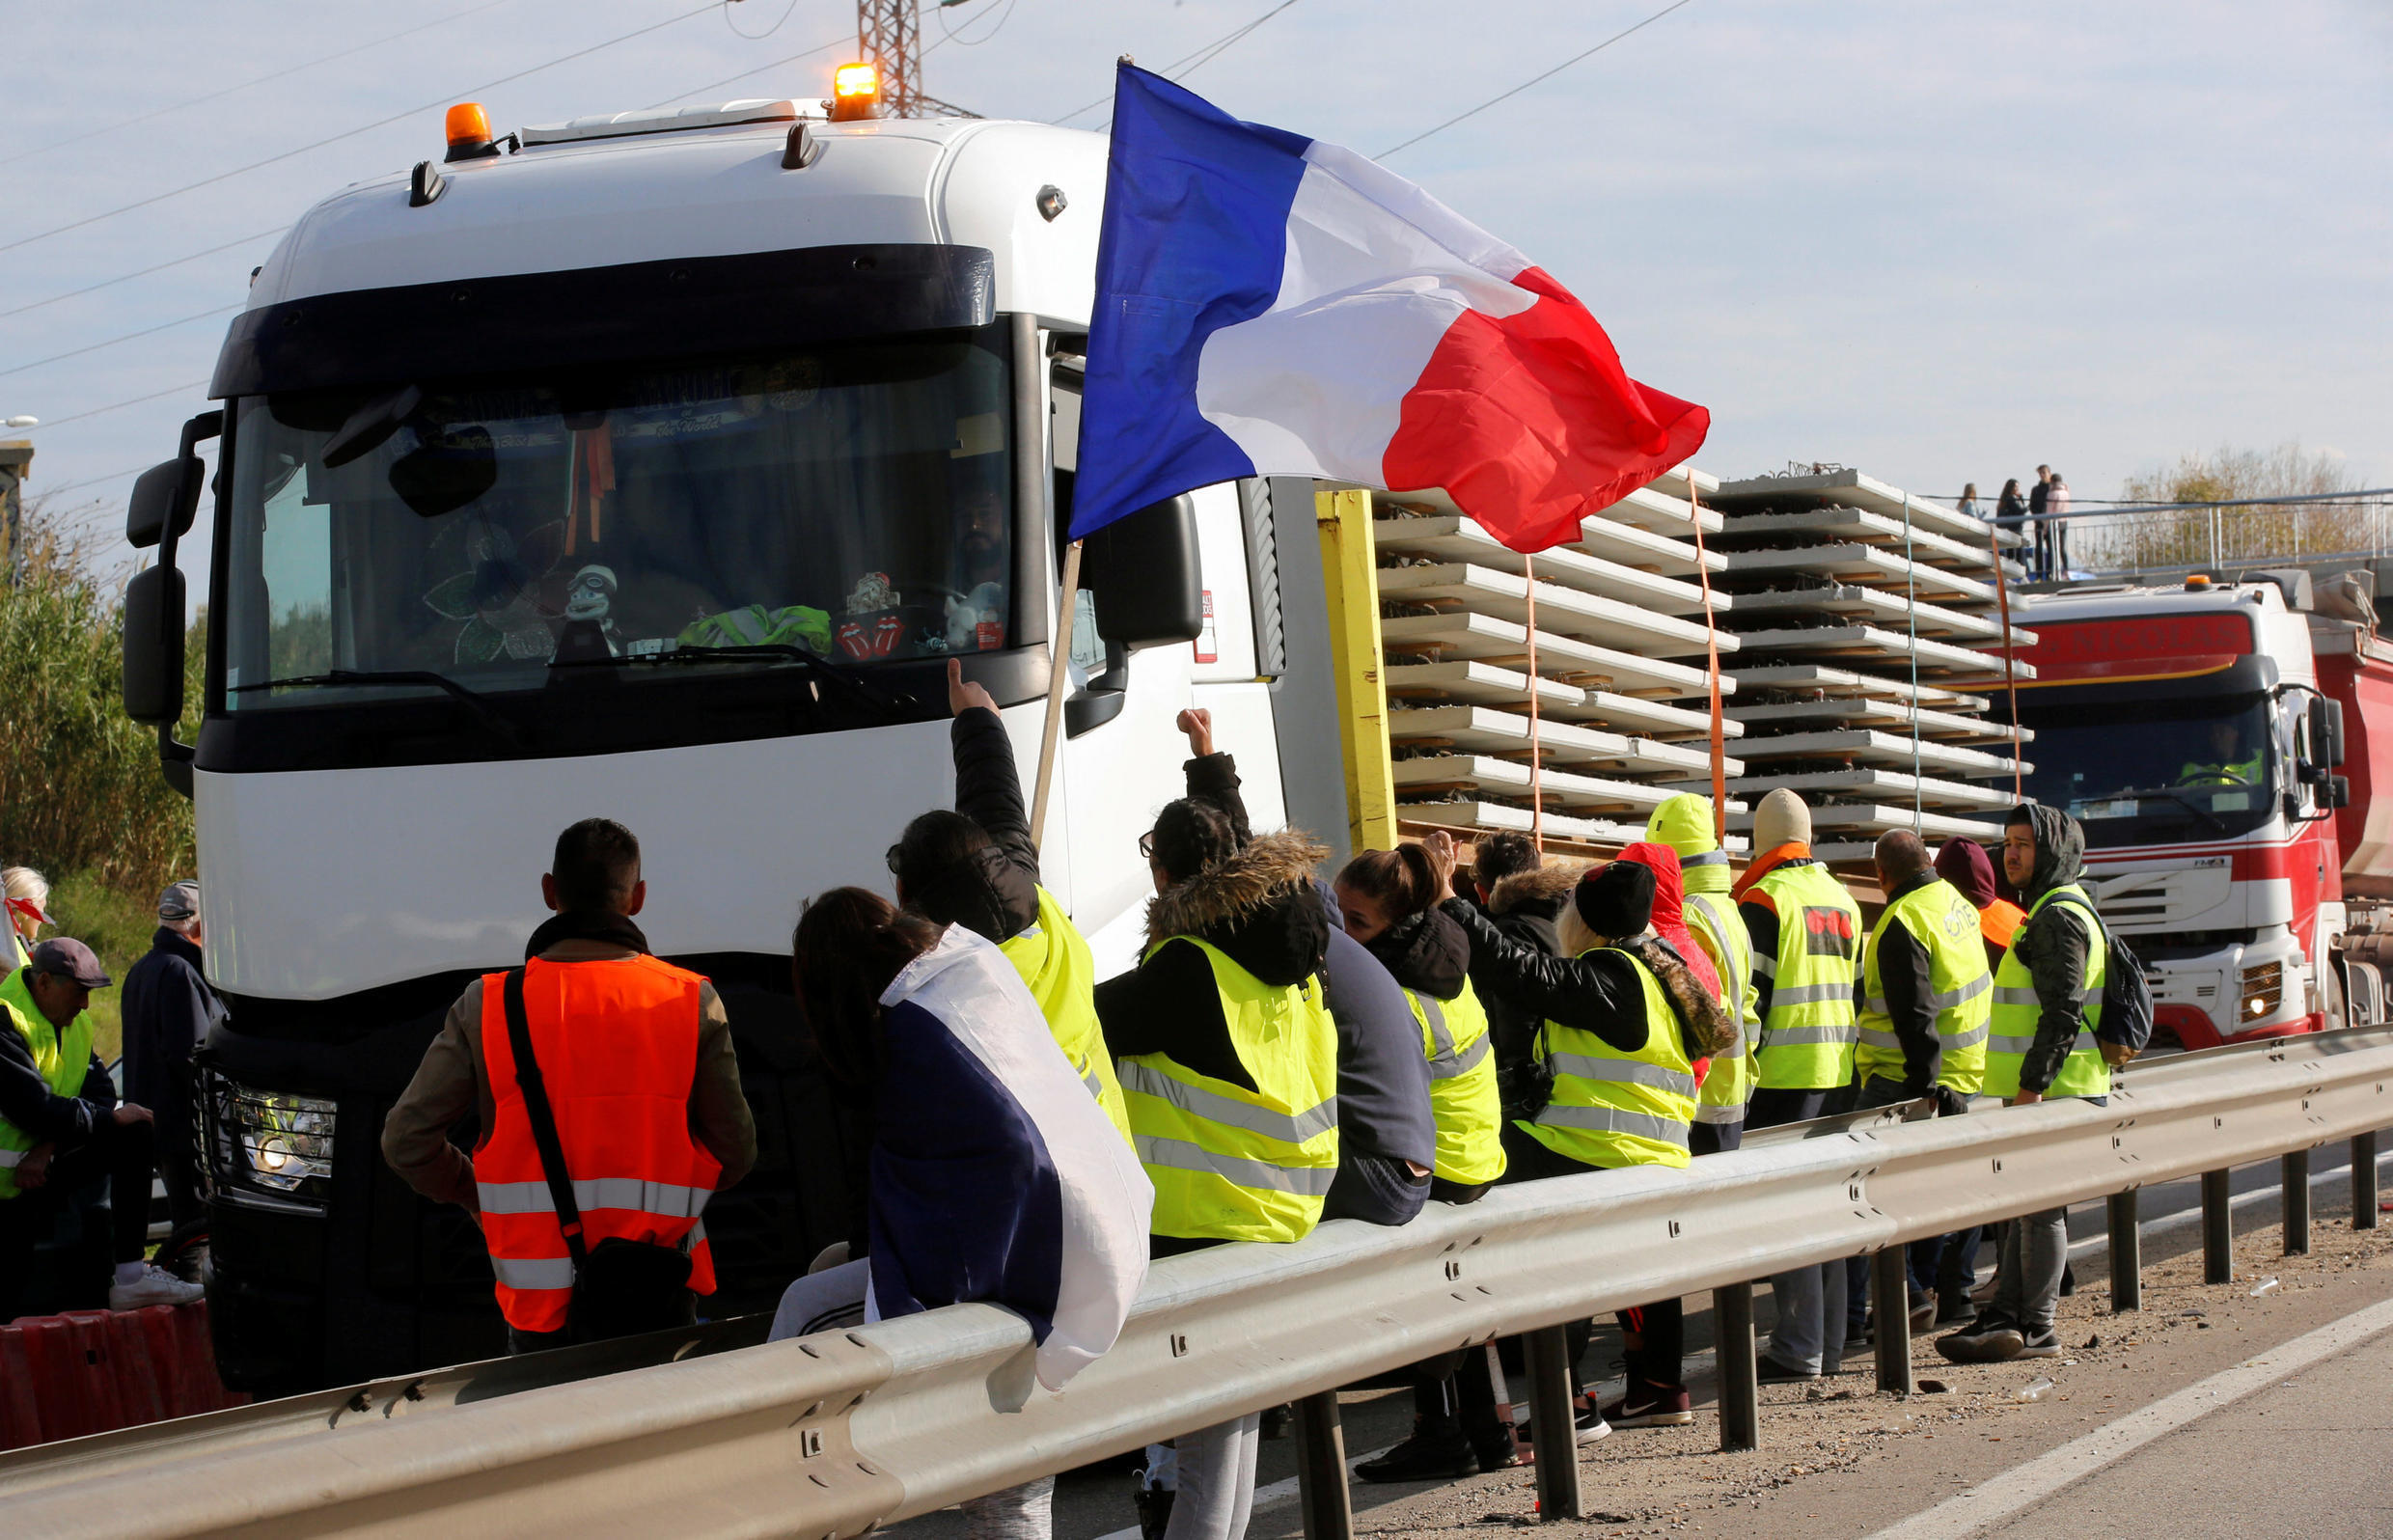 Demonstrators wearing yellow vests, a symbol of a French drivers' protest against higher fuel prices, block access to the fuel depot in Fos-sur-Mer, France, November 19, 2018.